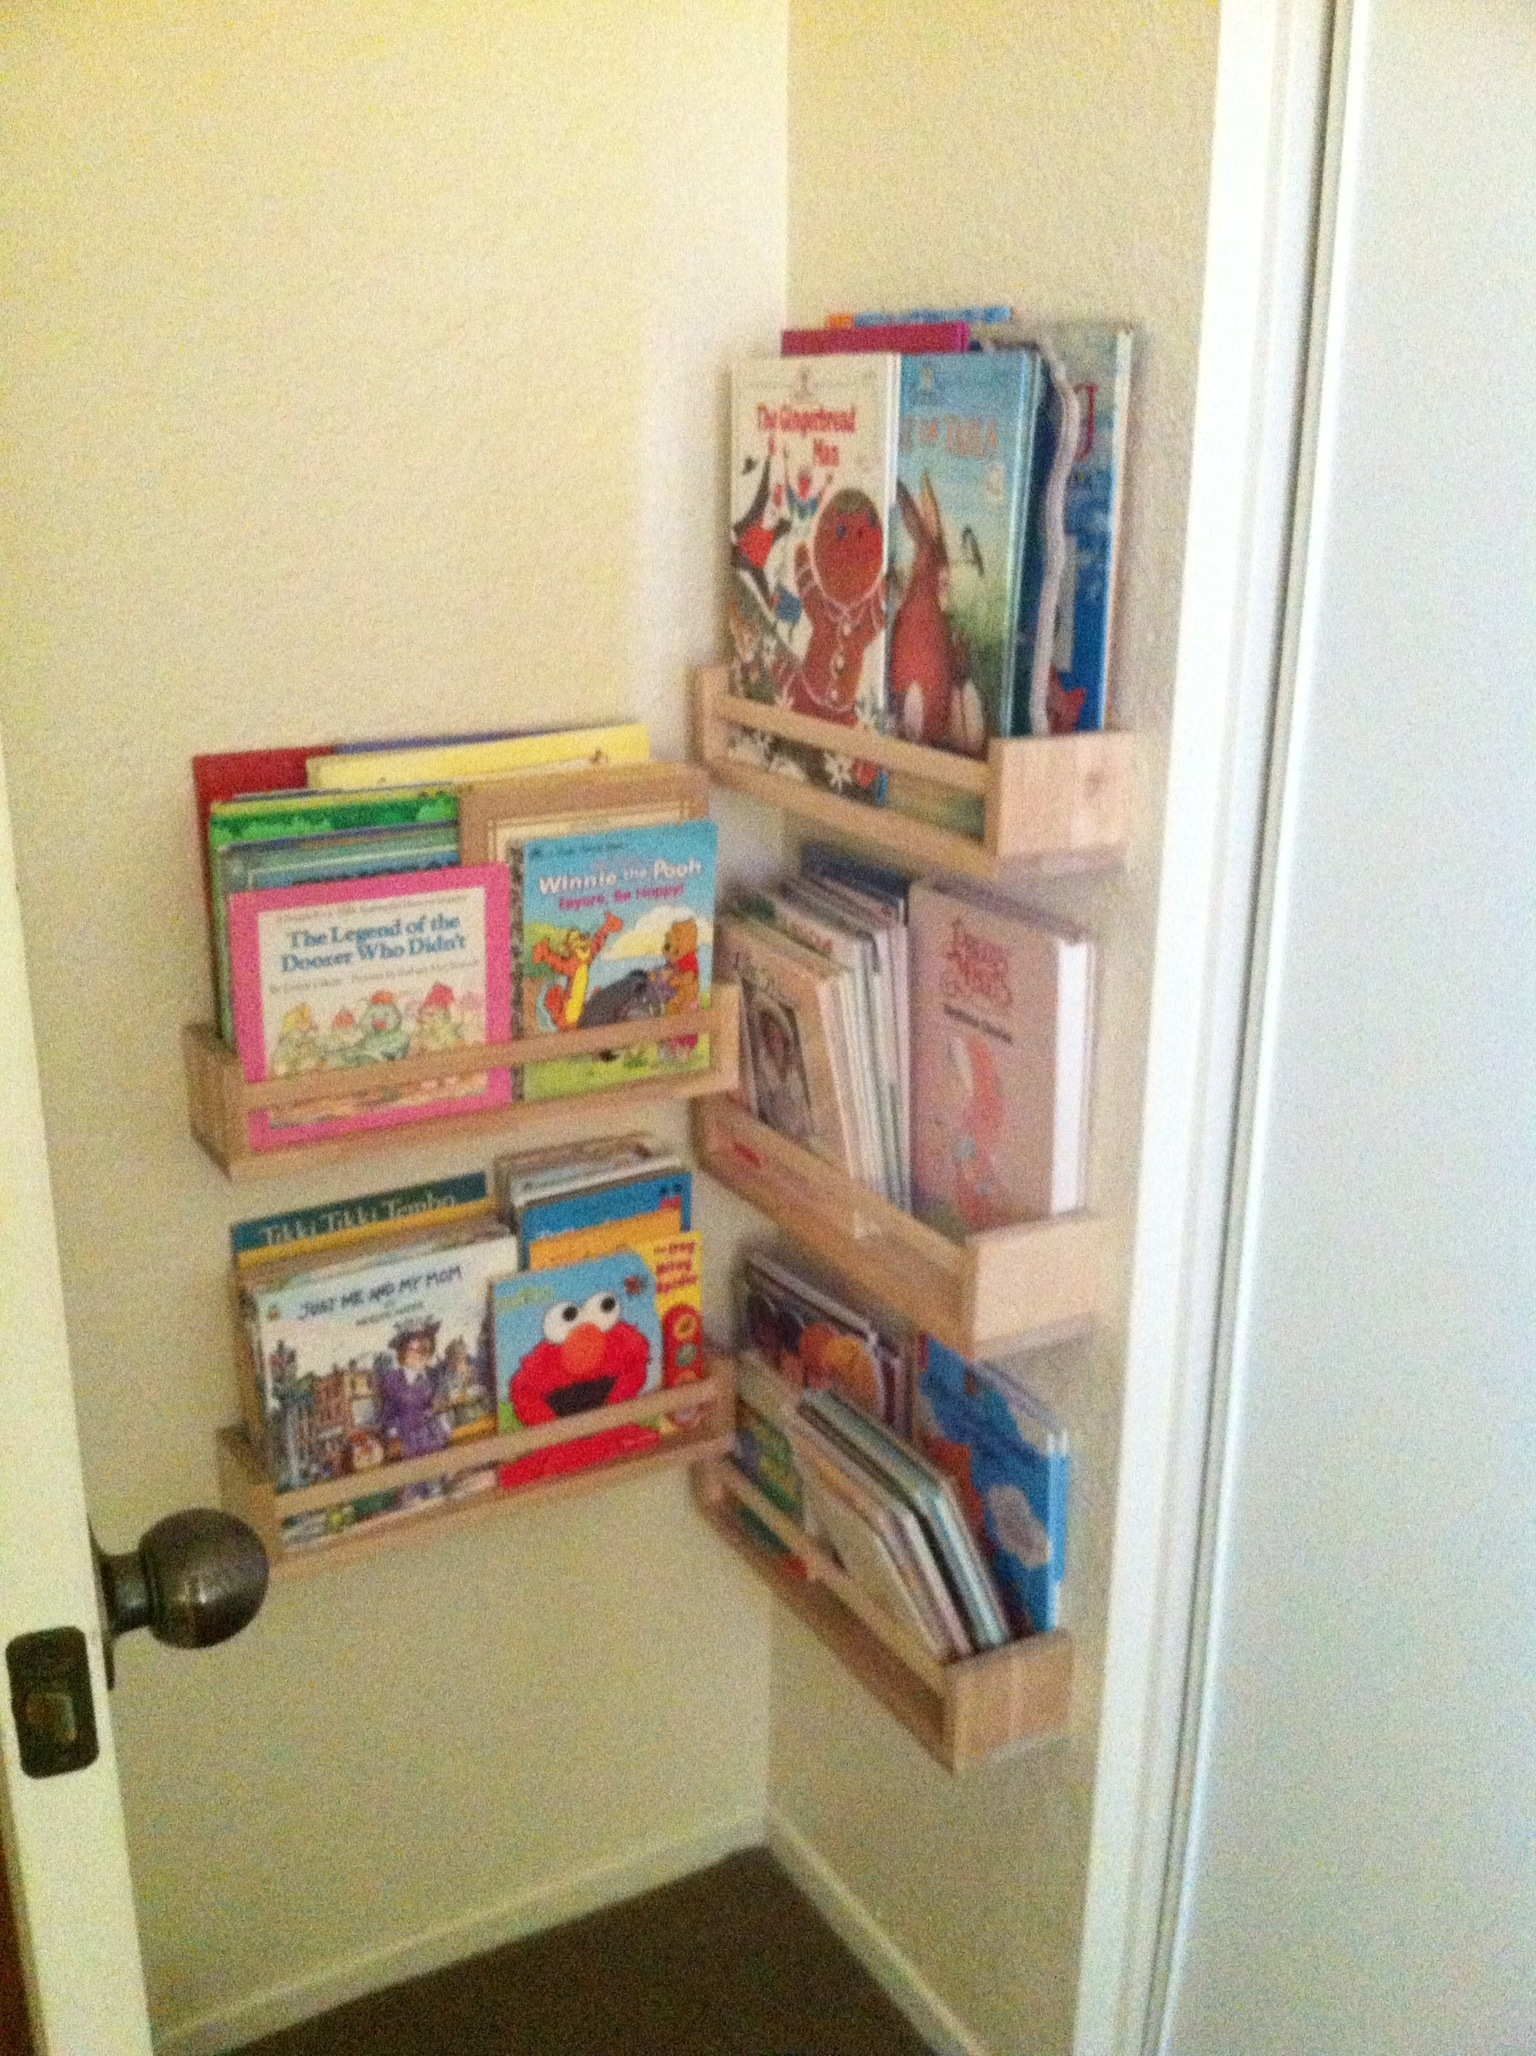 Amazing photo of Organization: Kids Room Bookshelves The Boys Store Blog with #966335 color and 1536x2056 pixels